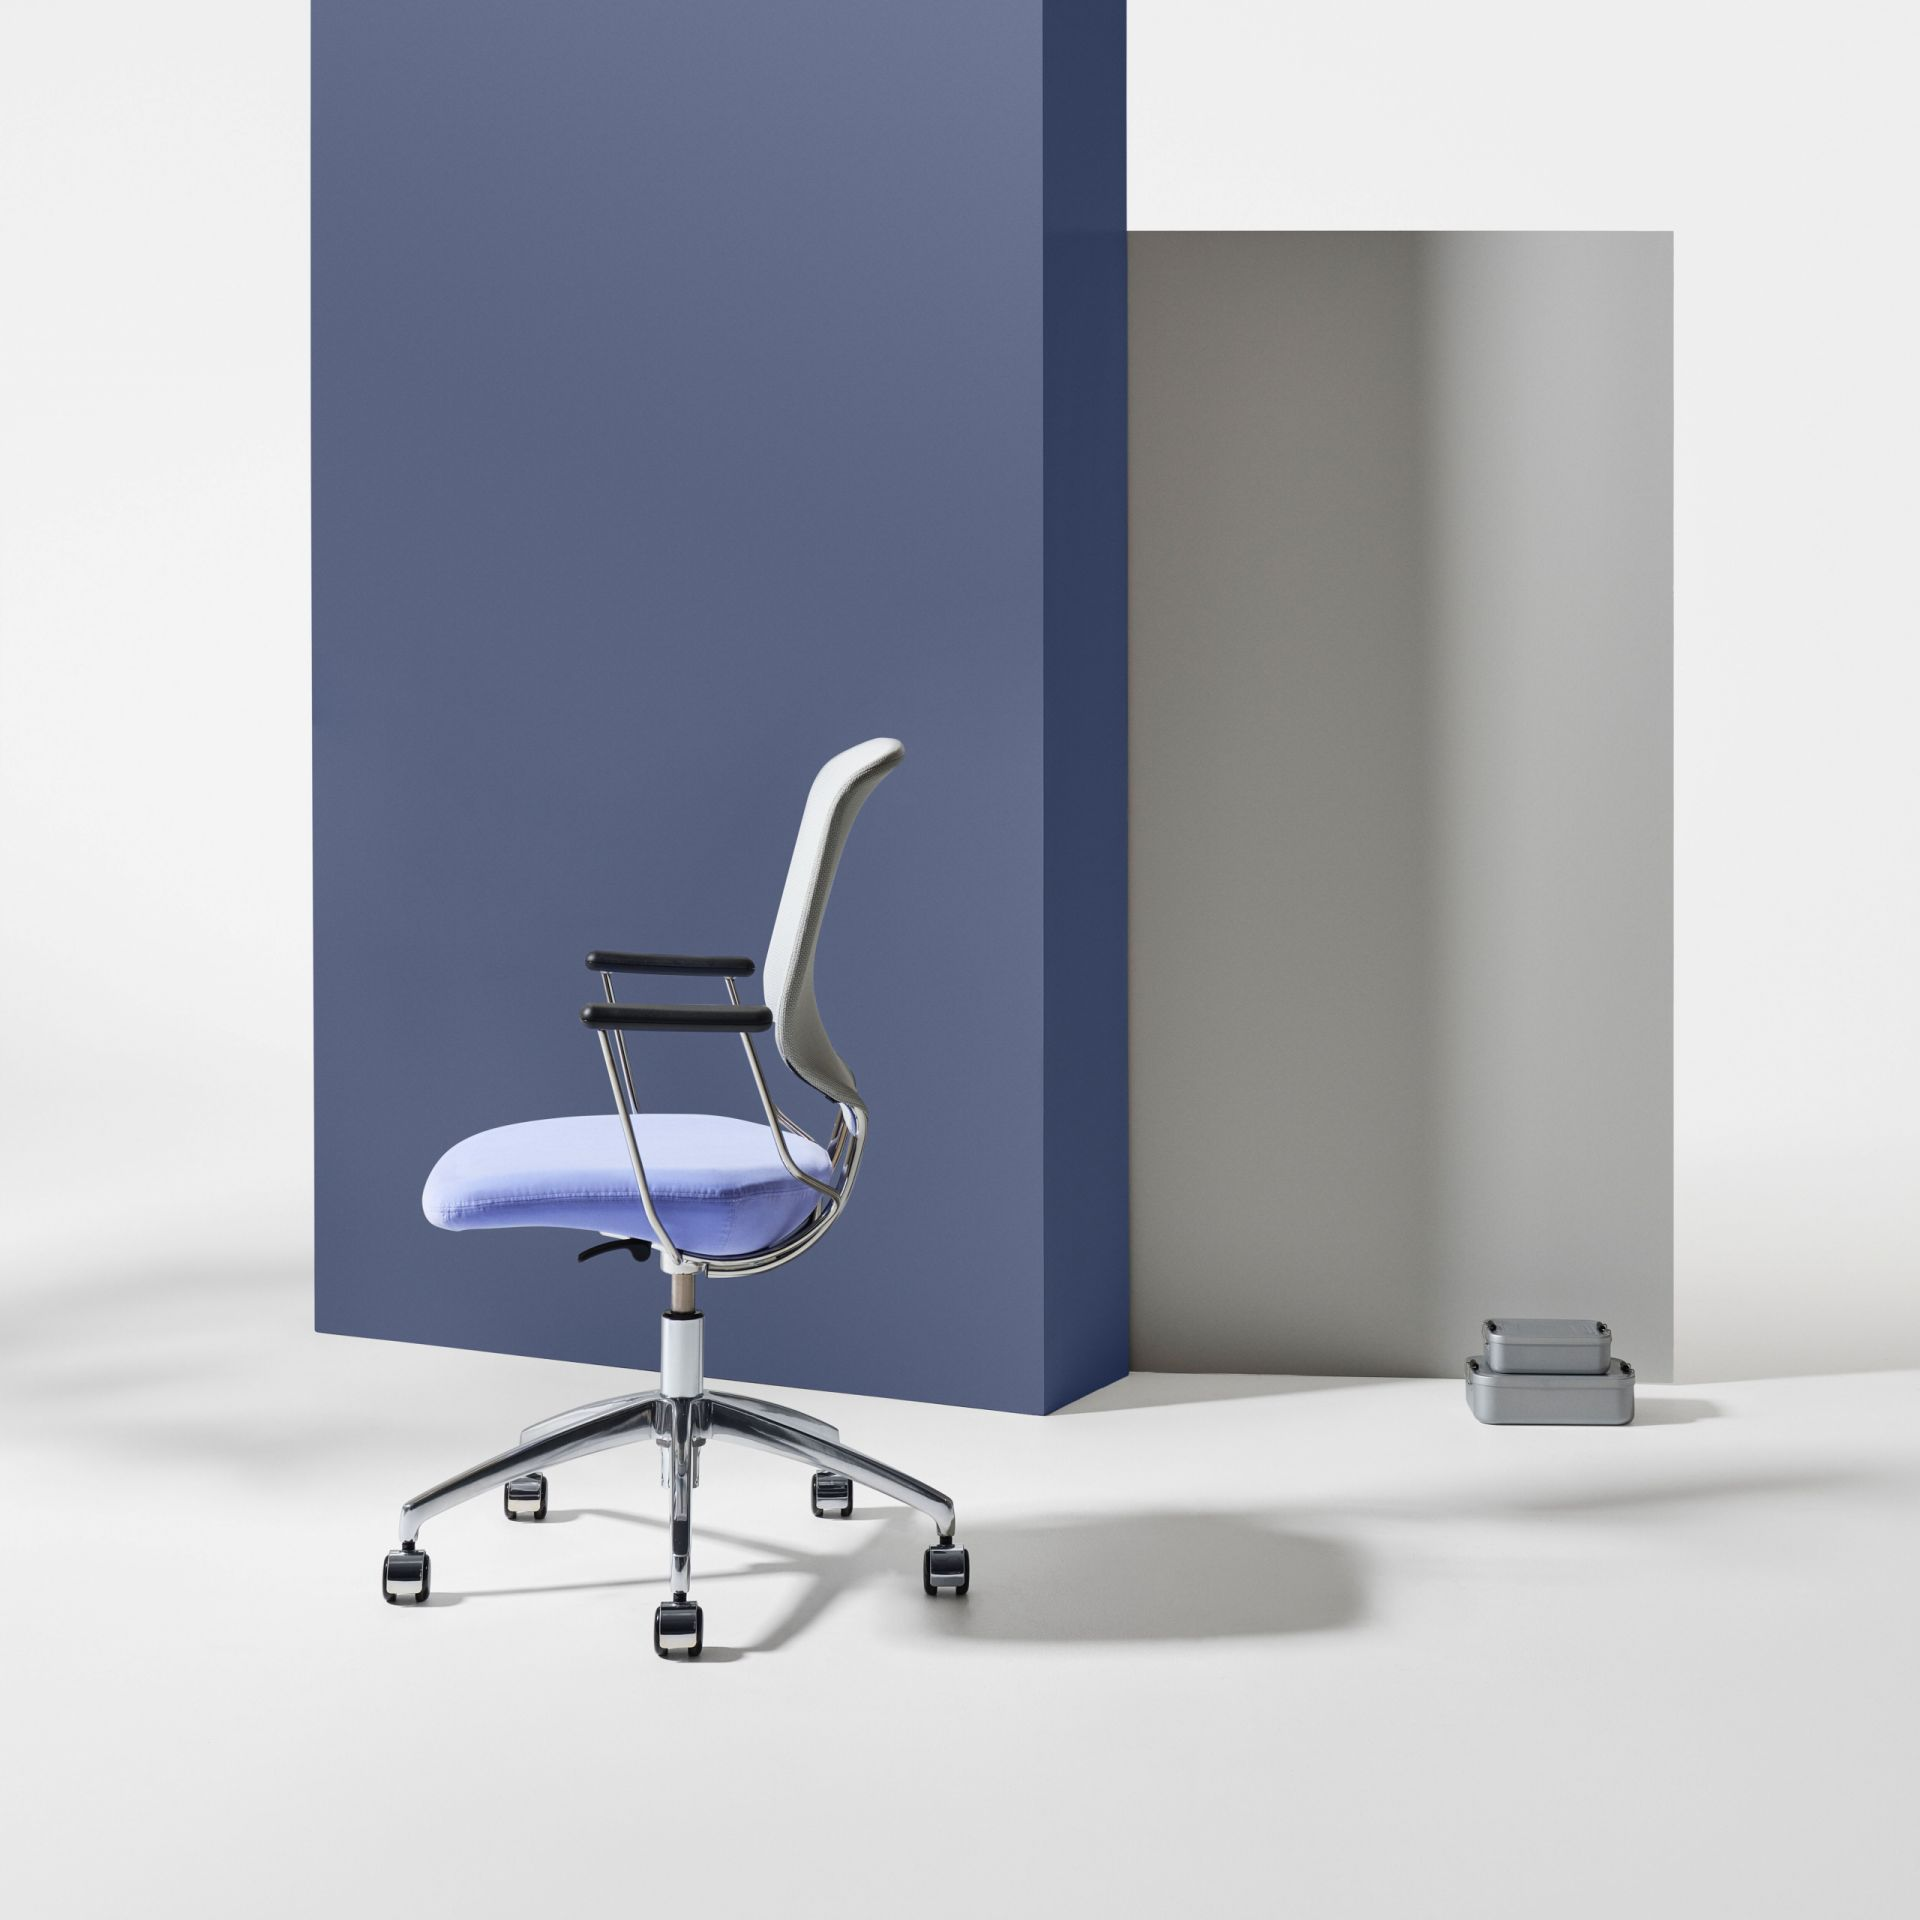 Savo Invite Invite meeting chair product image 4